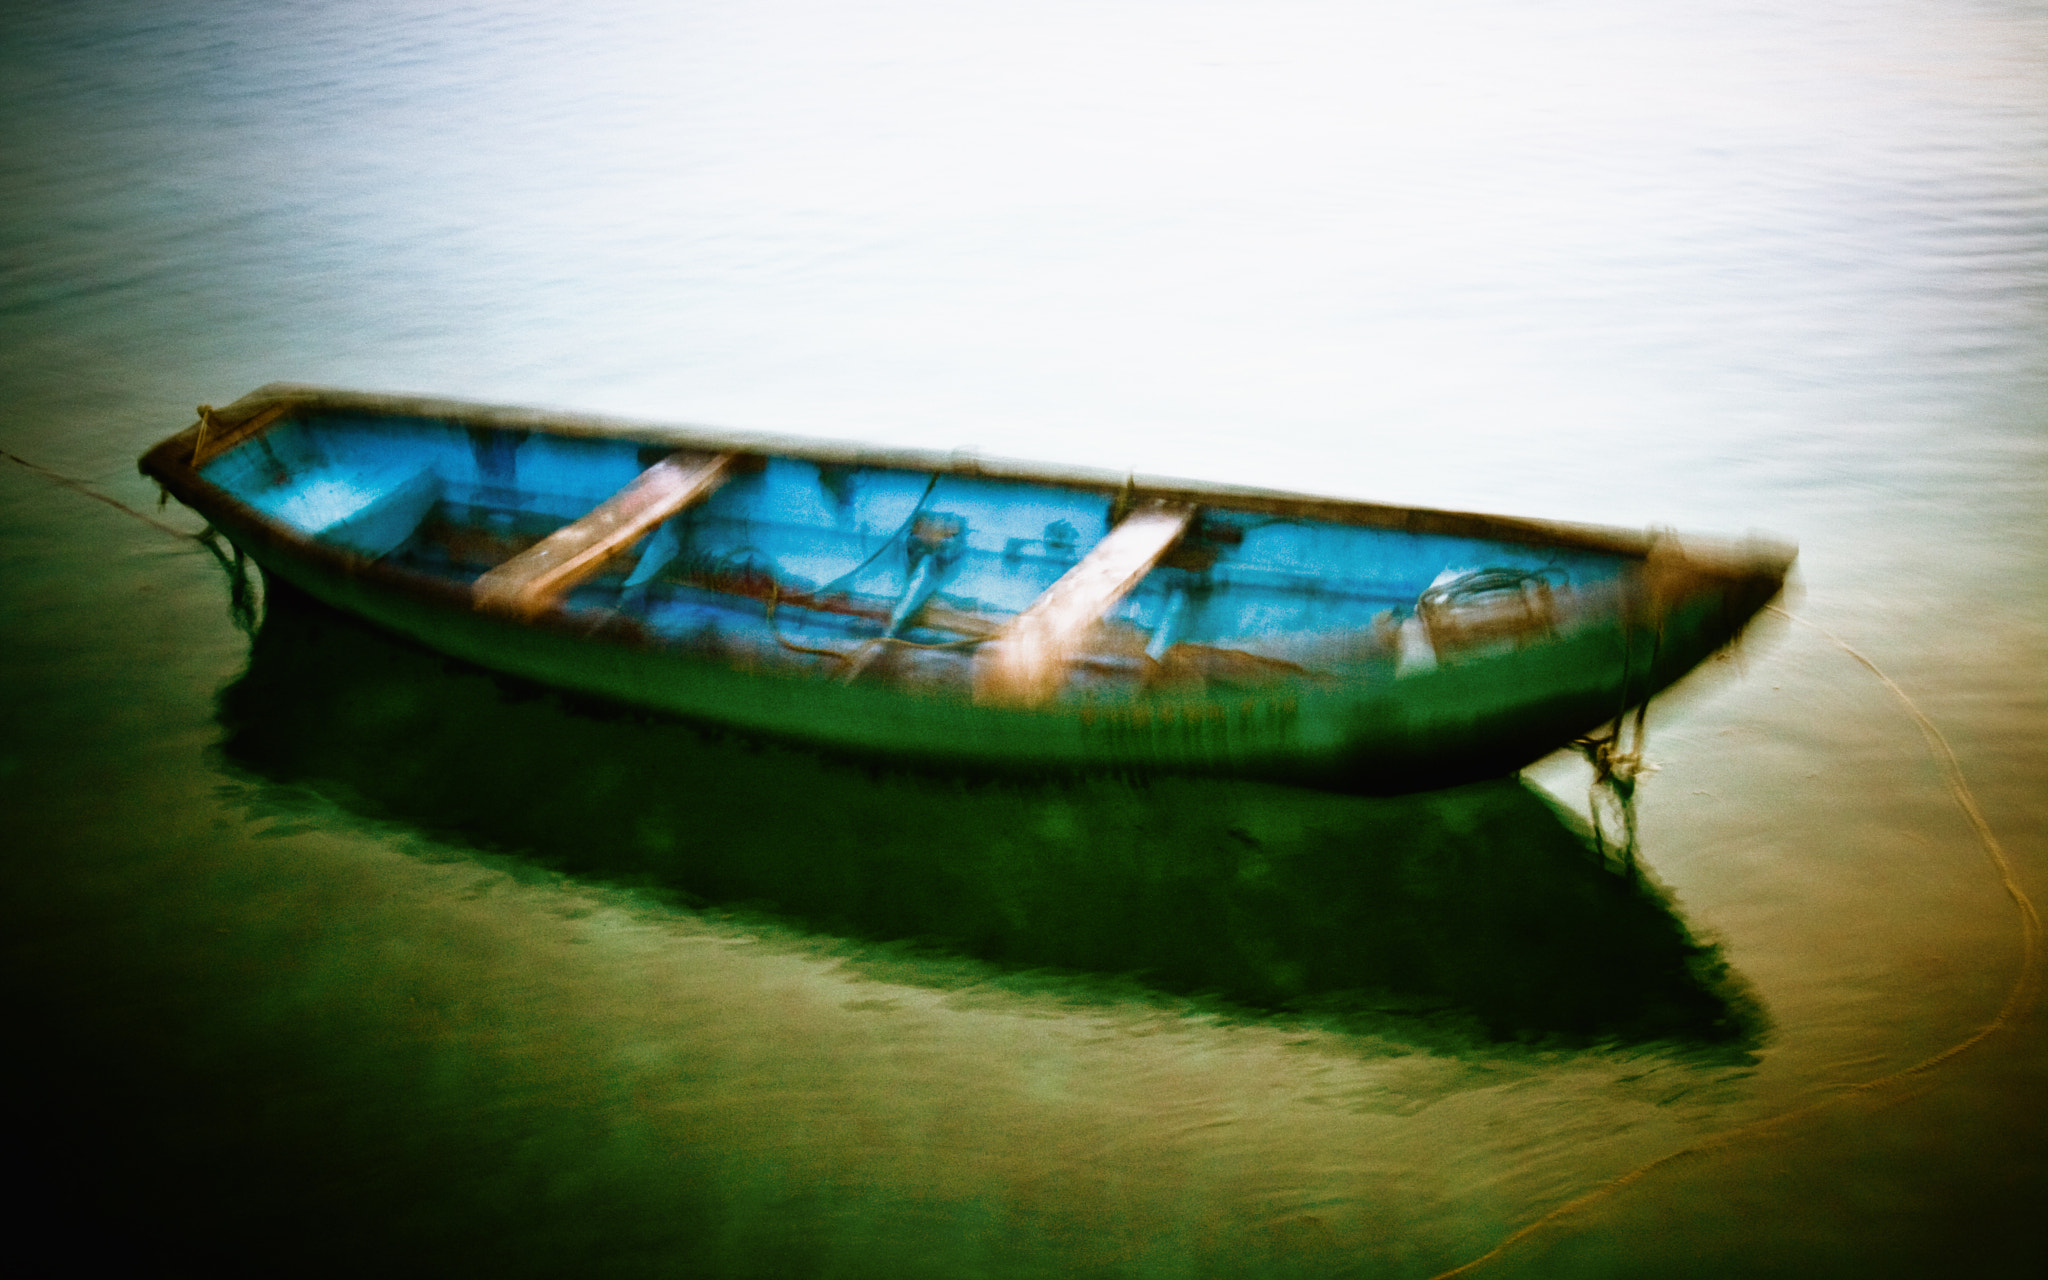 Photograph Boat that once rocked by Rajat Gaur on 500px